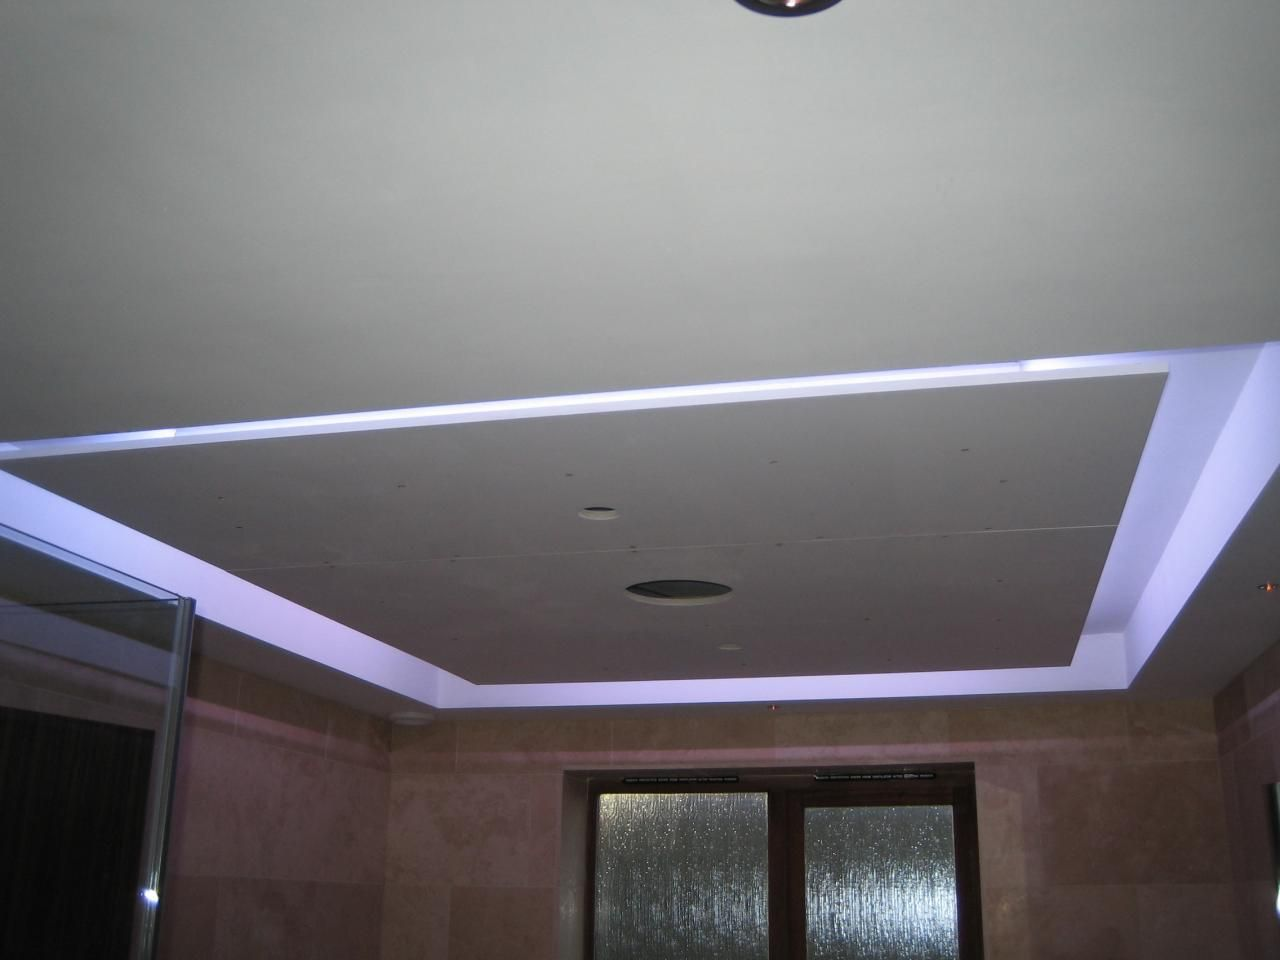 Ceiling Led Lights Flipkart : Http avforums forums attachments home automation